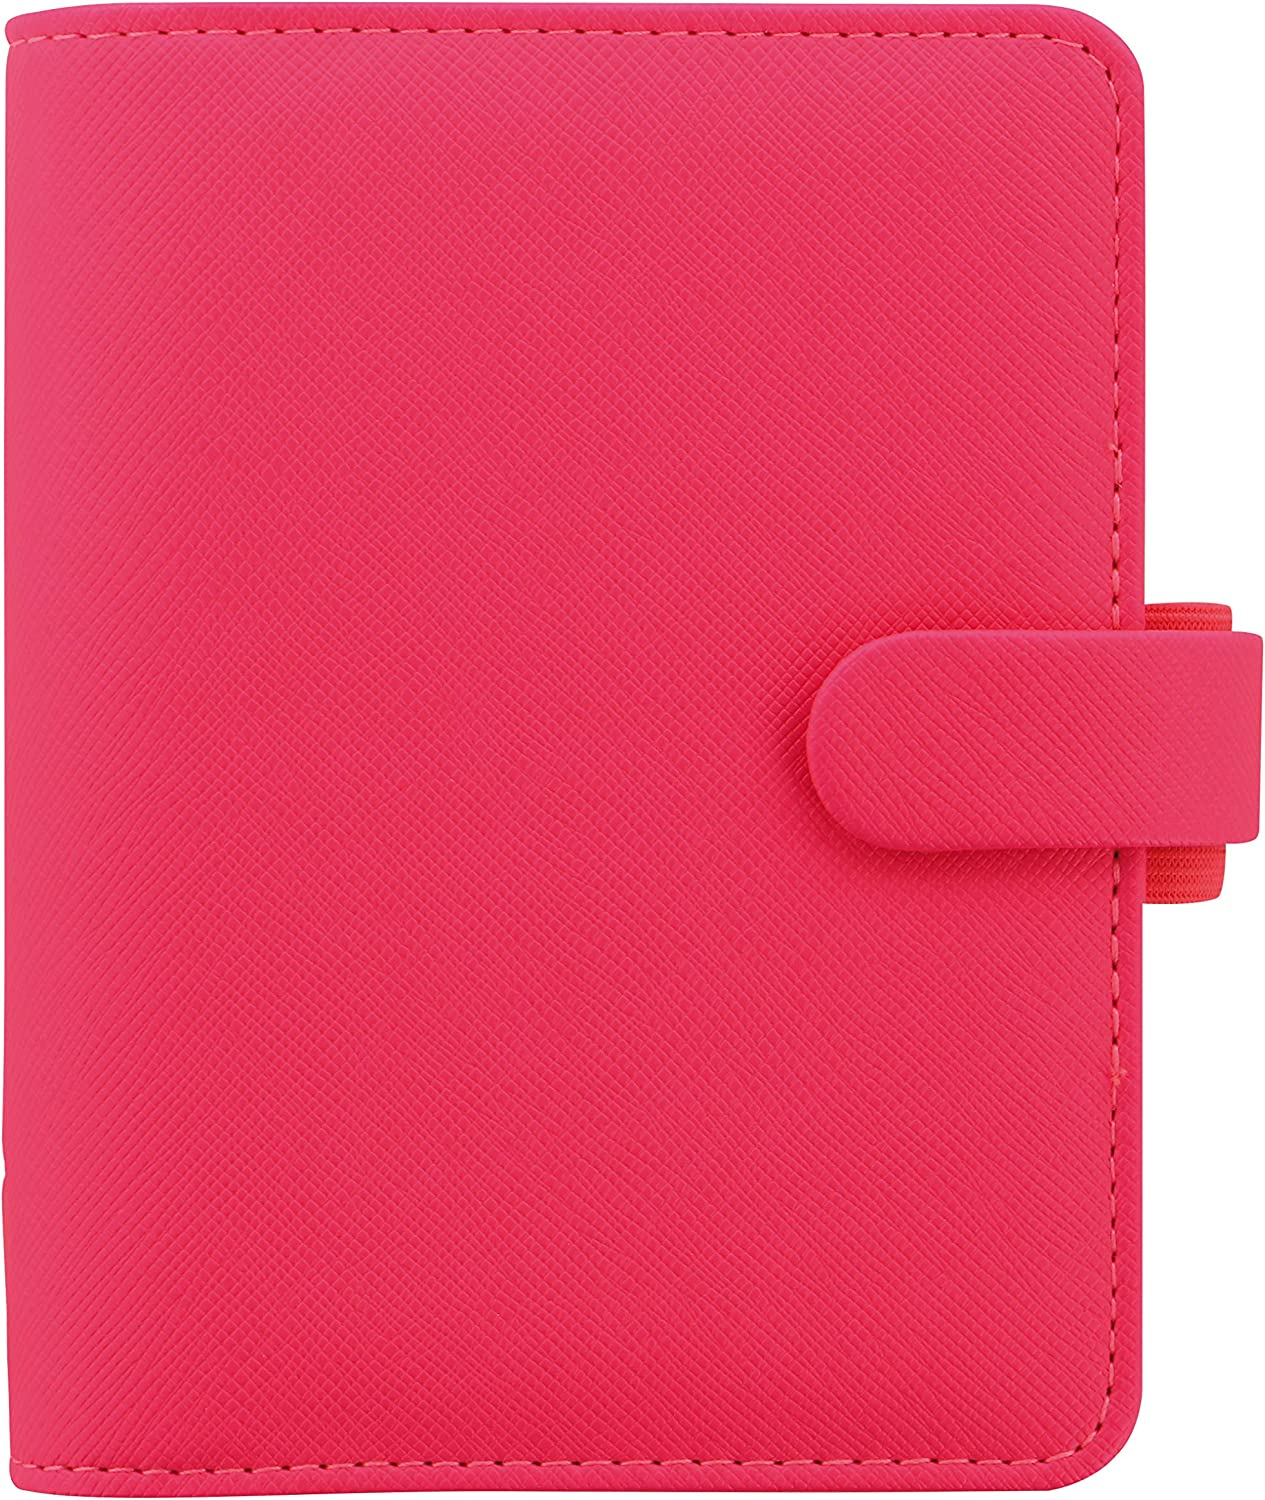 Includes Week On 2 Pages Calendar Diary 6 Rings Pocket C028752-21 Multilingual Filofax 2021 Saffiano Fluoro Pink